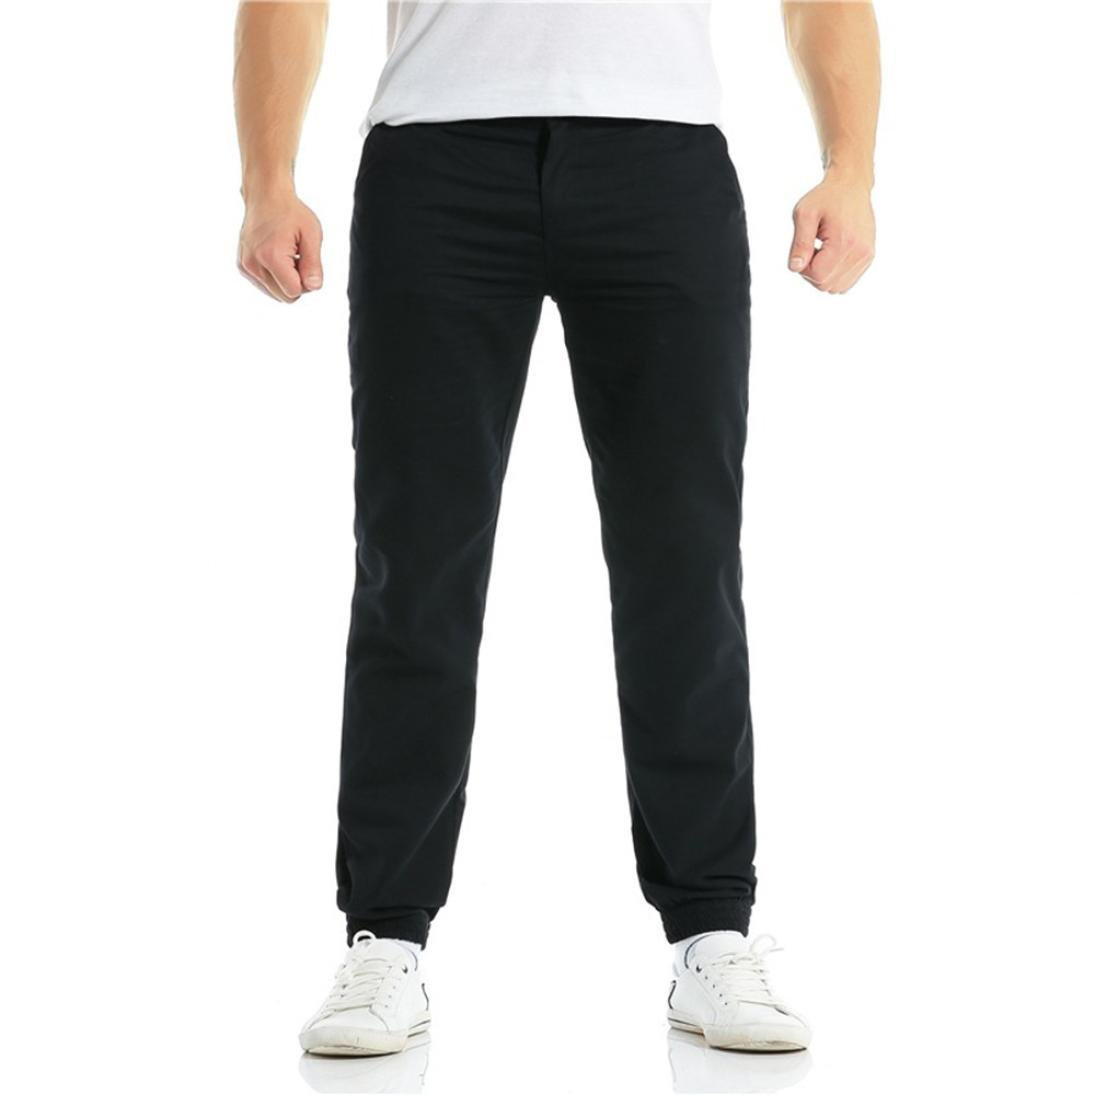 GREFER Fashion Men's Casual Drawstring Zipper Bunch of Foot Pant Pure Color Black